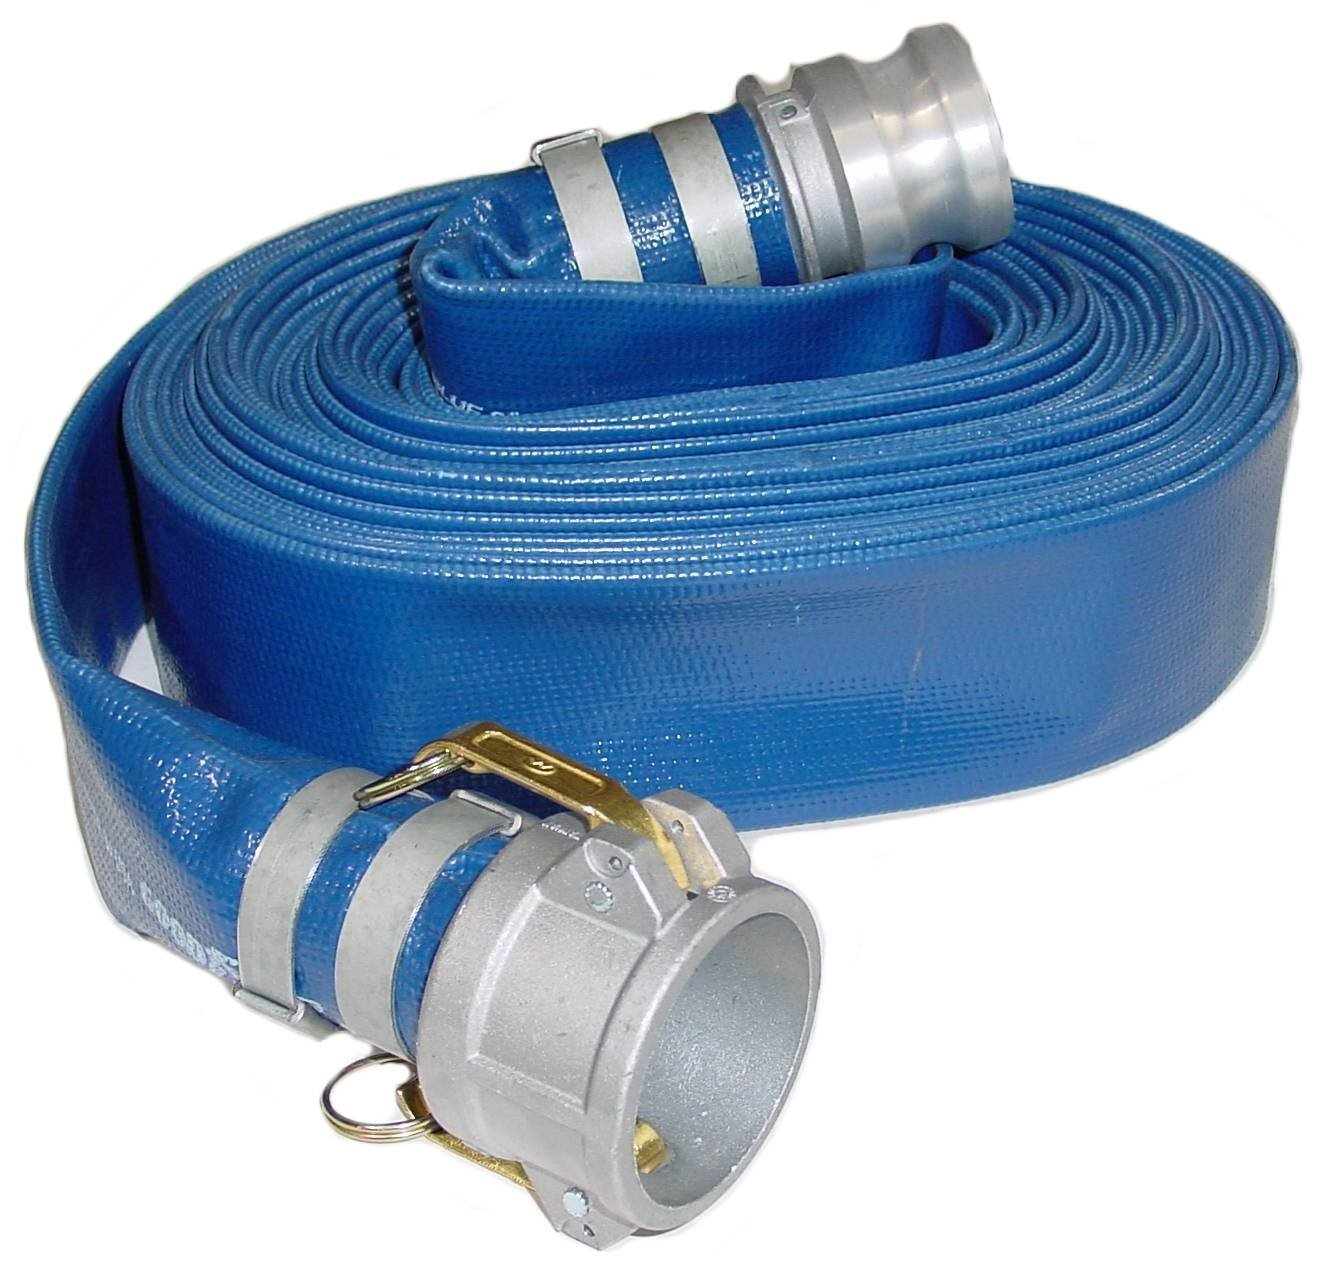 Abbott Rubber PVC Discharge Hose Assembly, Blue, 3'' Male X Female Cam And Groove, 60 psi Max Pressure, 50' Length, 3'' ID